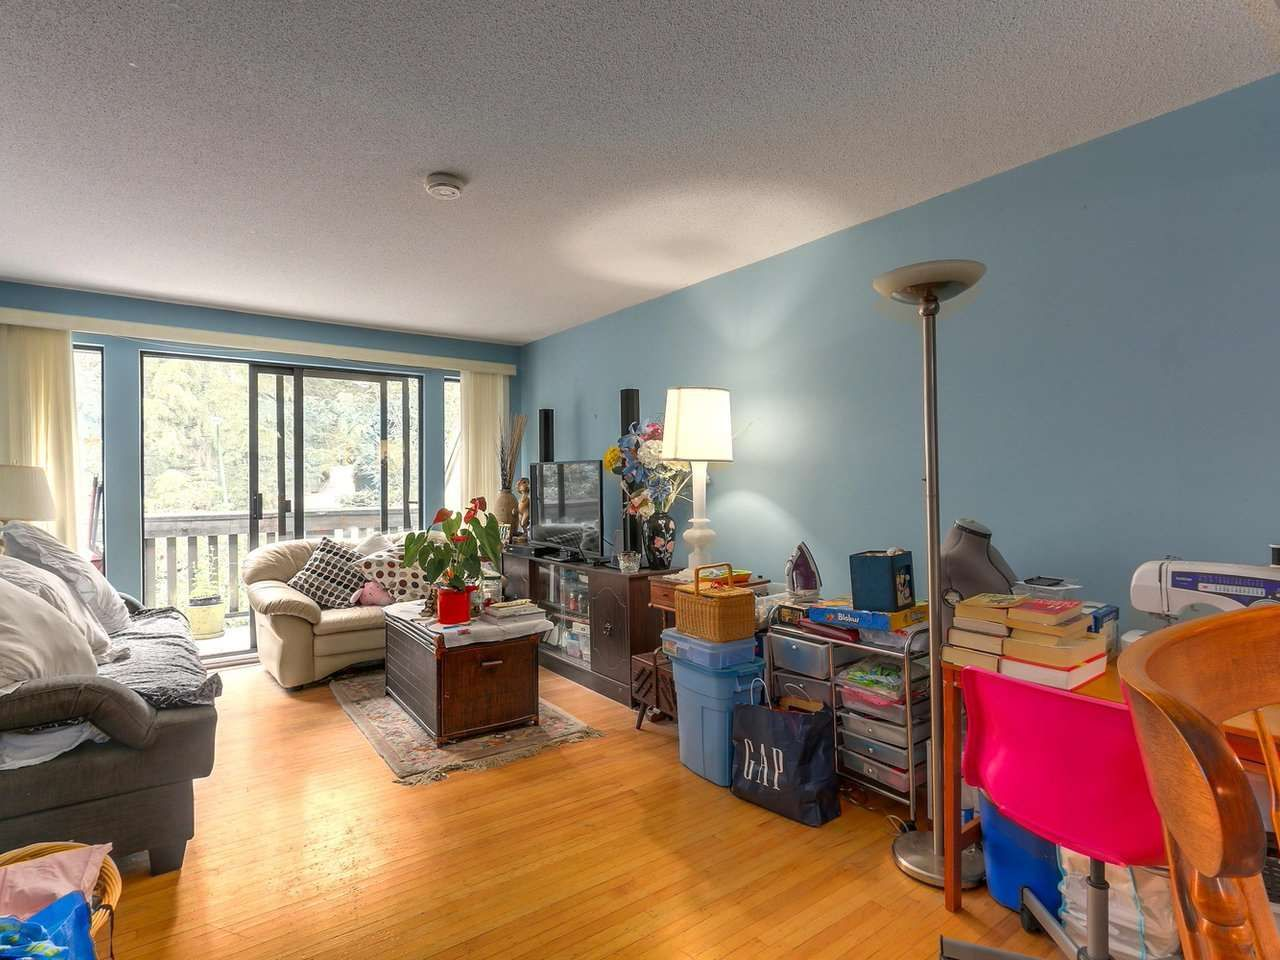 """Photo 3: Photos: 15 1811 PURCELL Way in North Vancouver: Lynnmour Condo for sale in """"LYNNMOUR SOUTH"""" : MLS®# R2276321"""